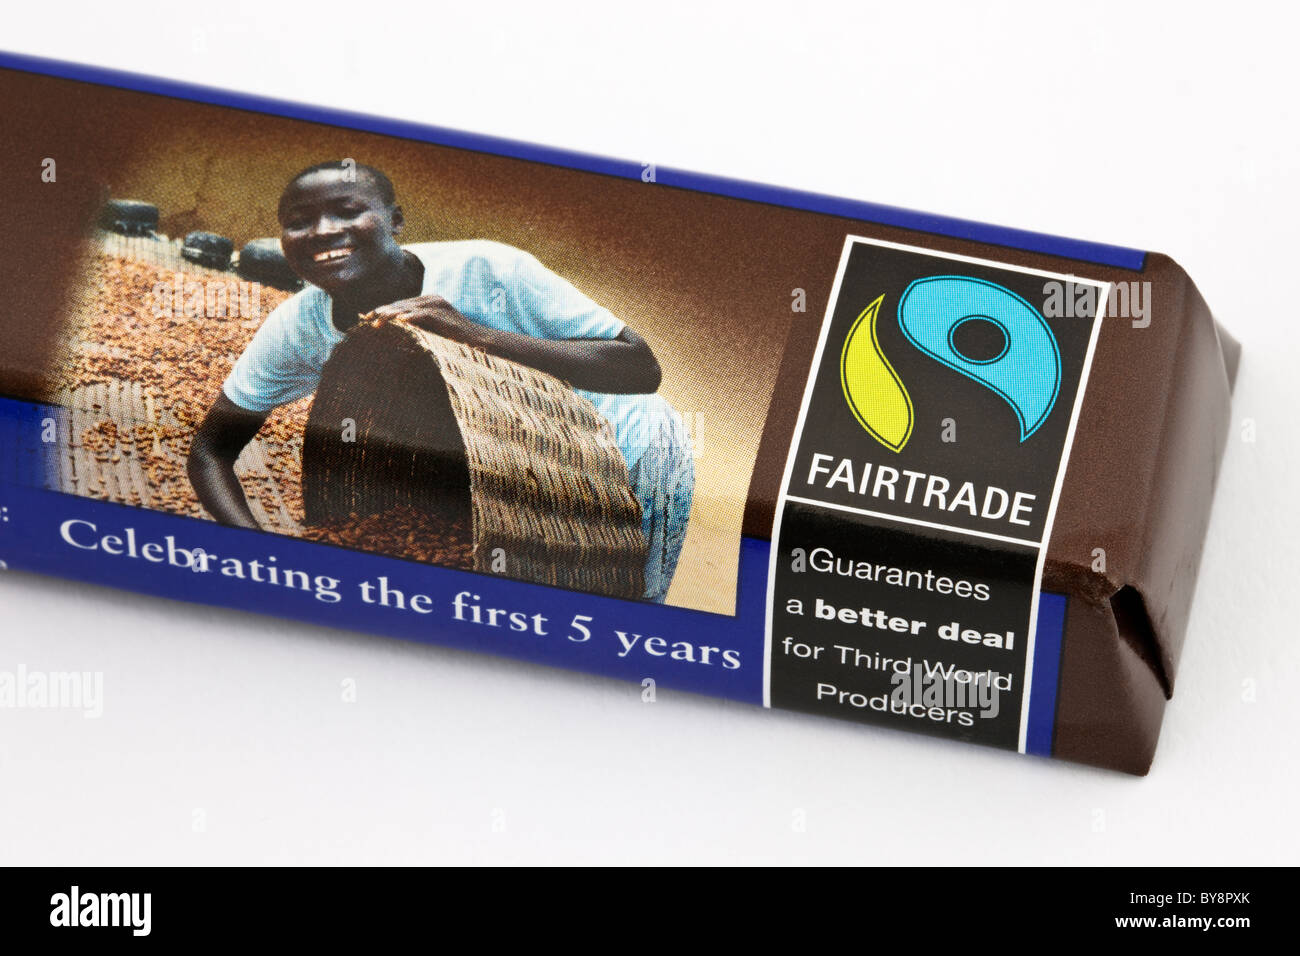 Close-up of Fairtrade chocolate bar wrapped in wrapper with fair trade logo and label. England UK Britain - Stock Image